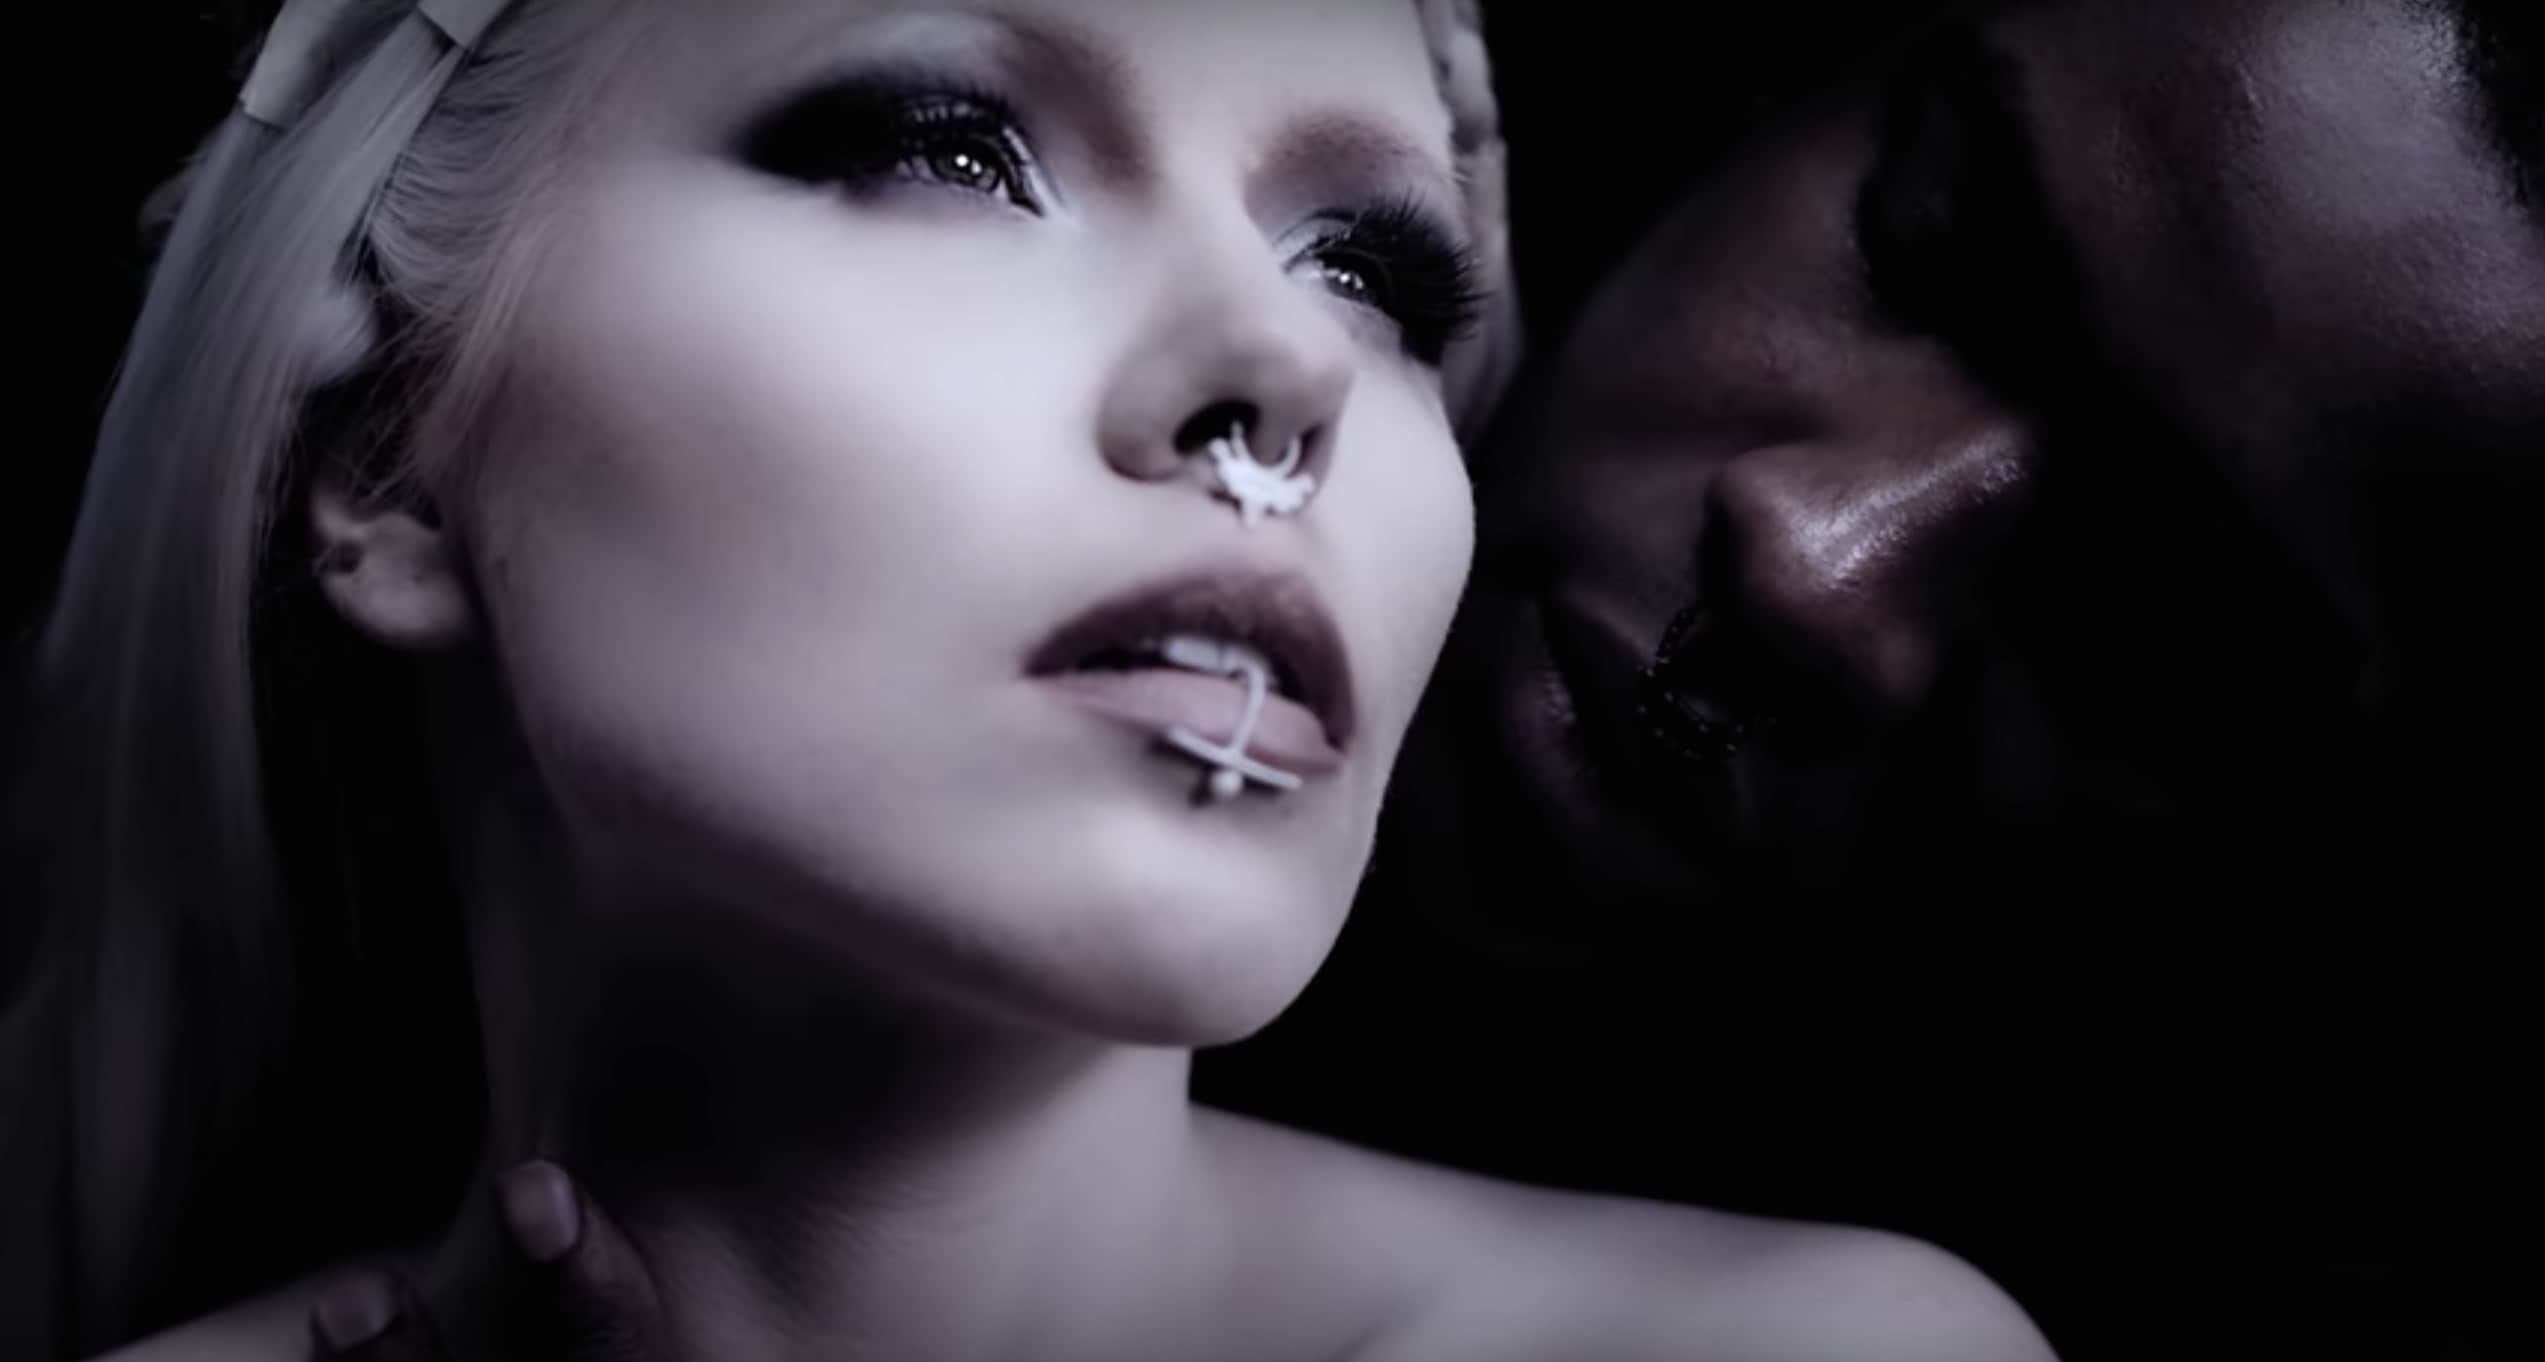 kerli savages video